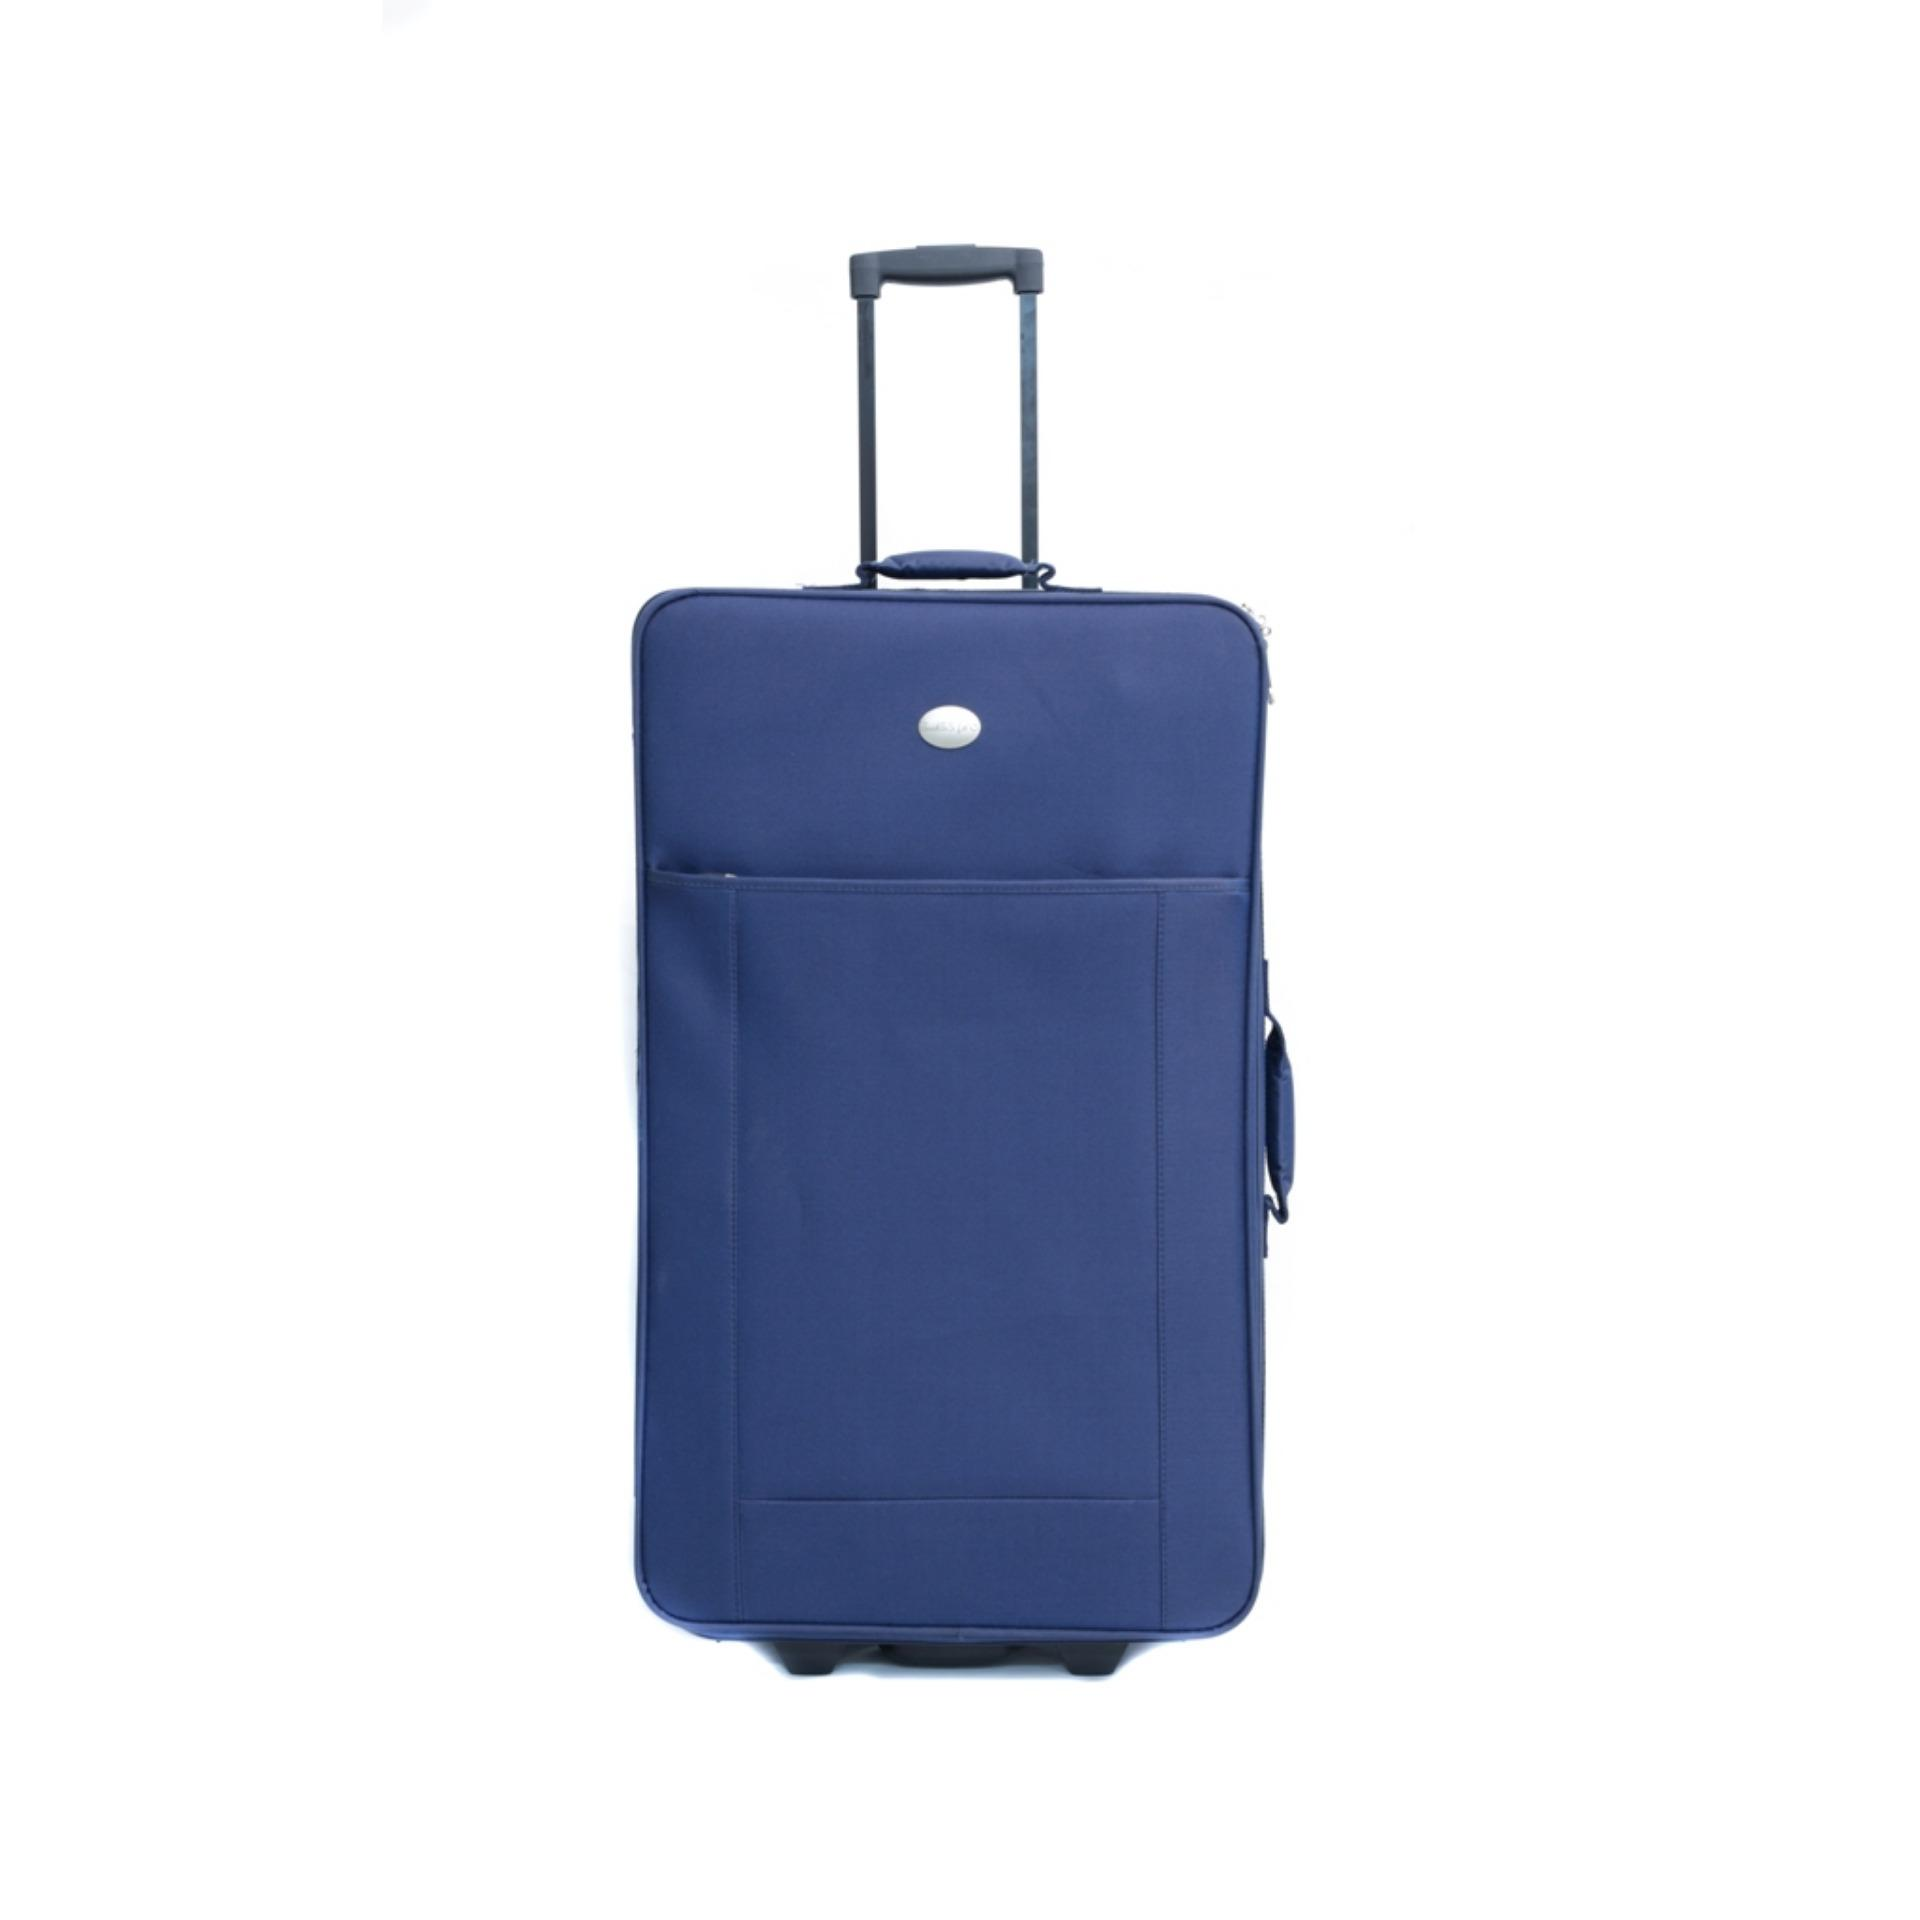 Luggage Shop  Carry-On Bags   Suitcases Online in Pakistan - Daraz.pk d970041e73815